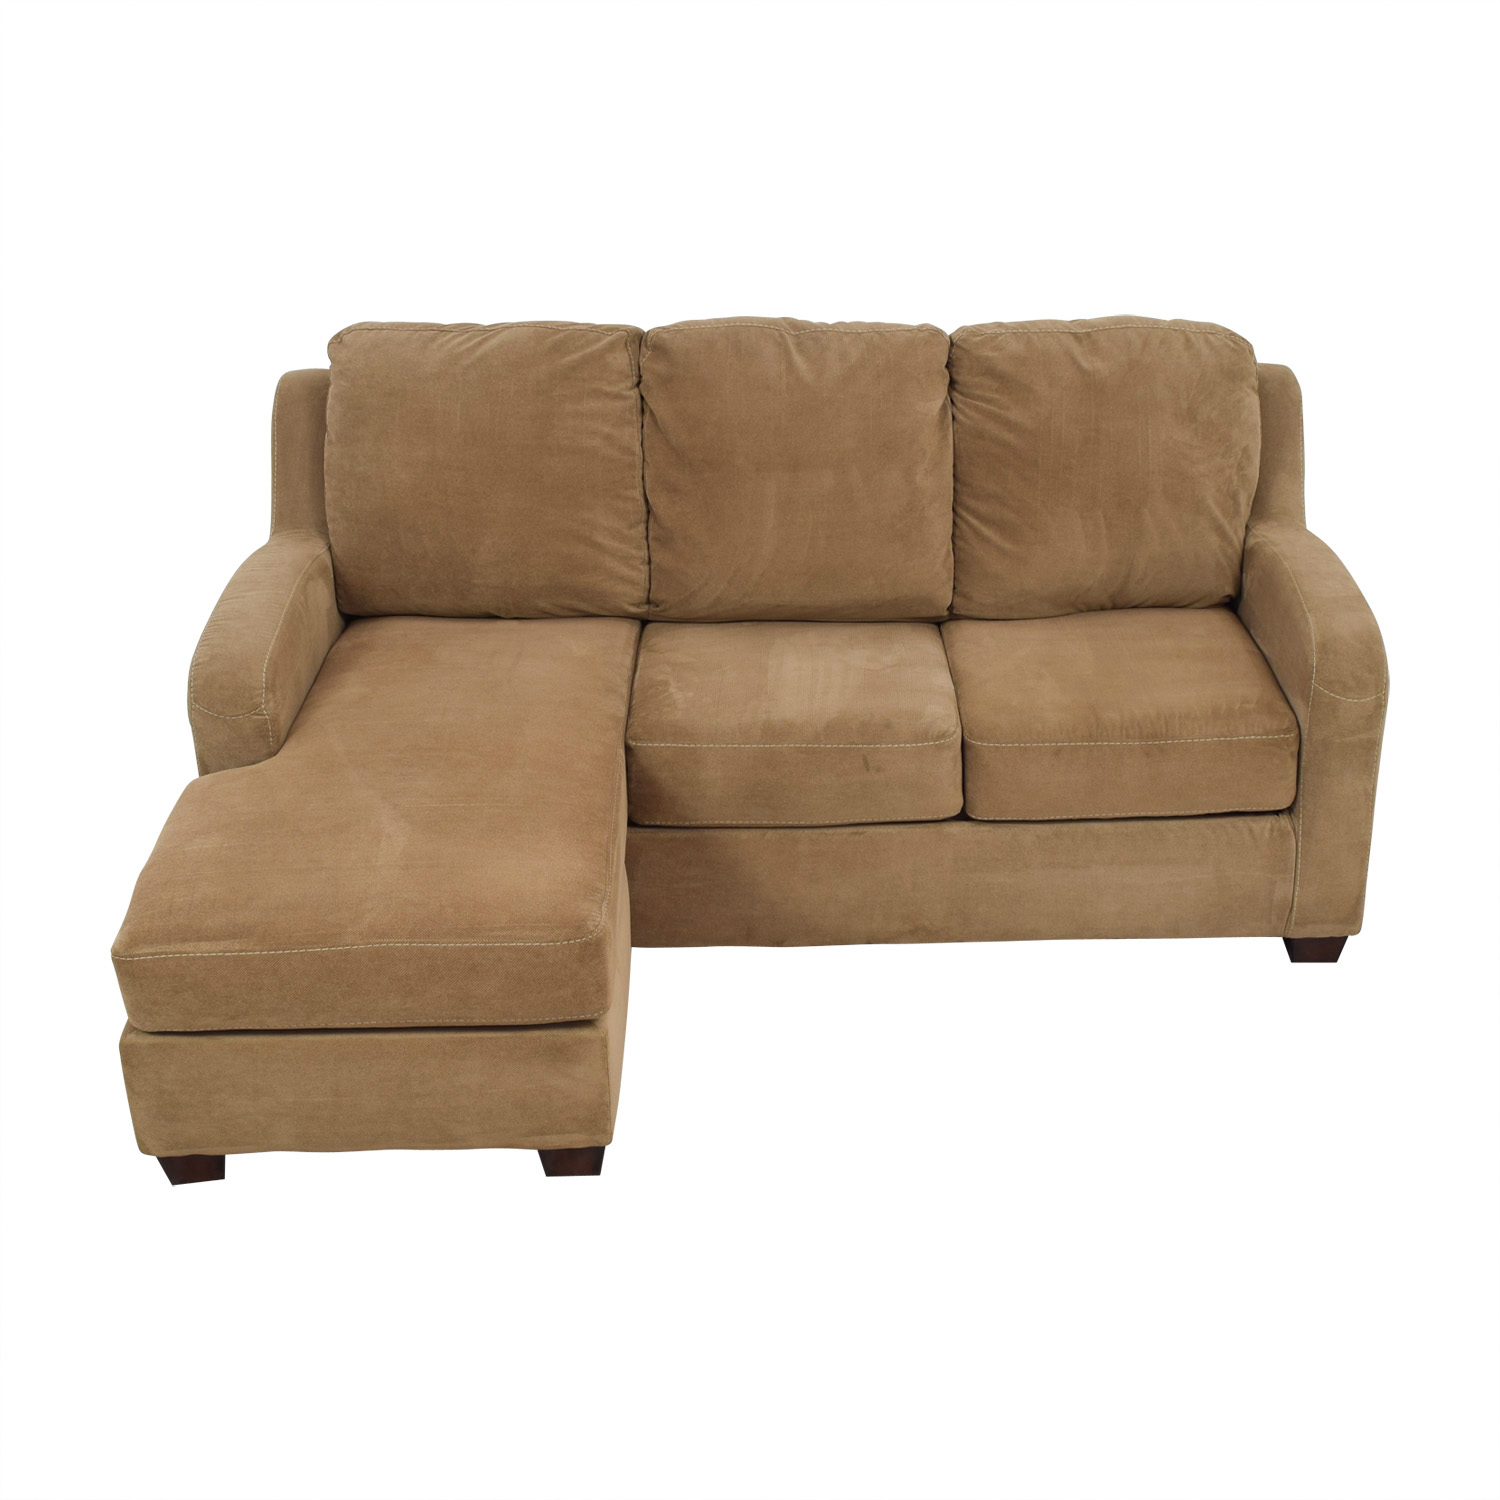 Ashley Furniture Tan Chaise Sectional sale